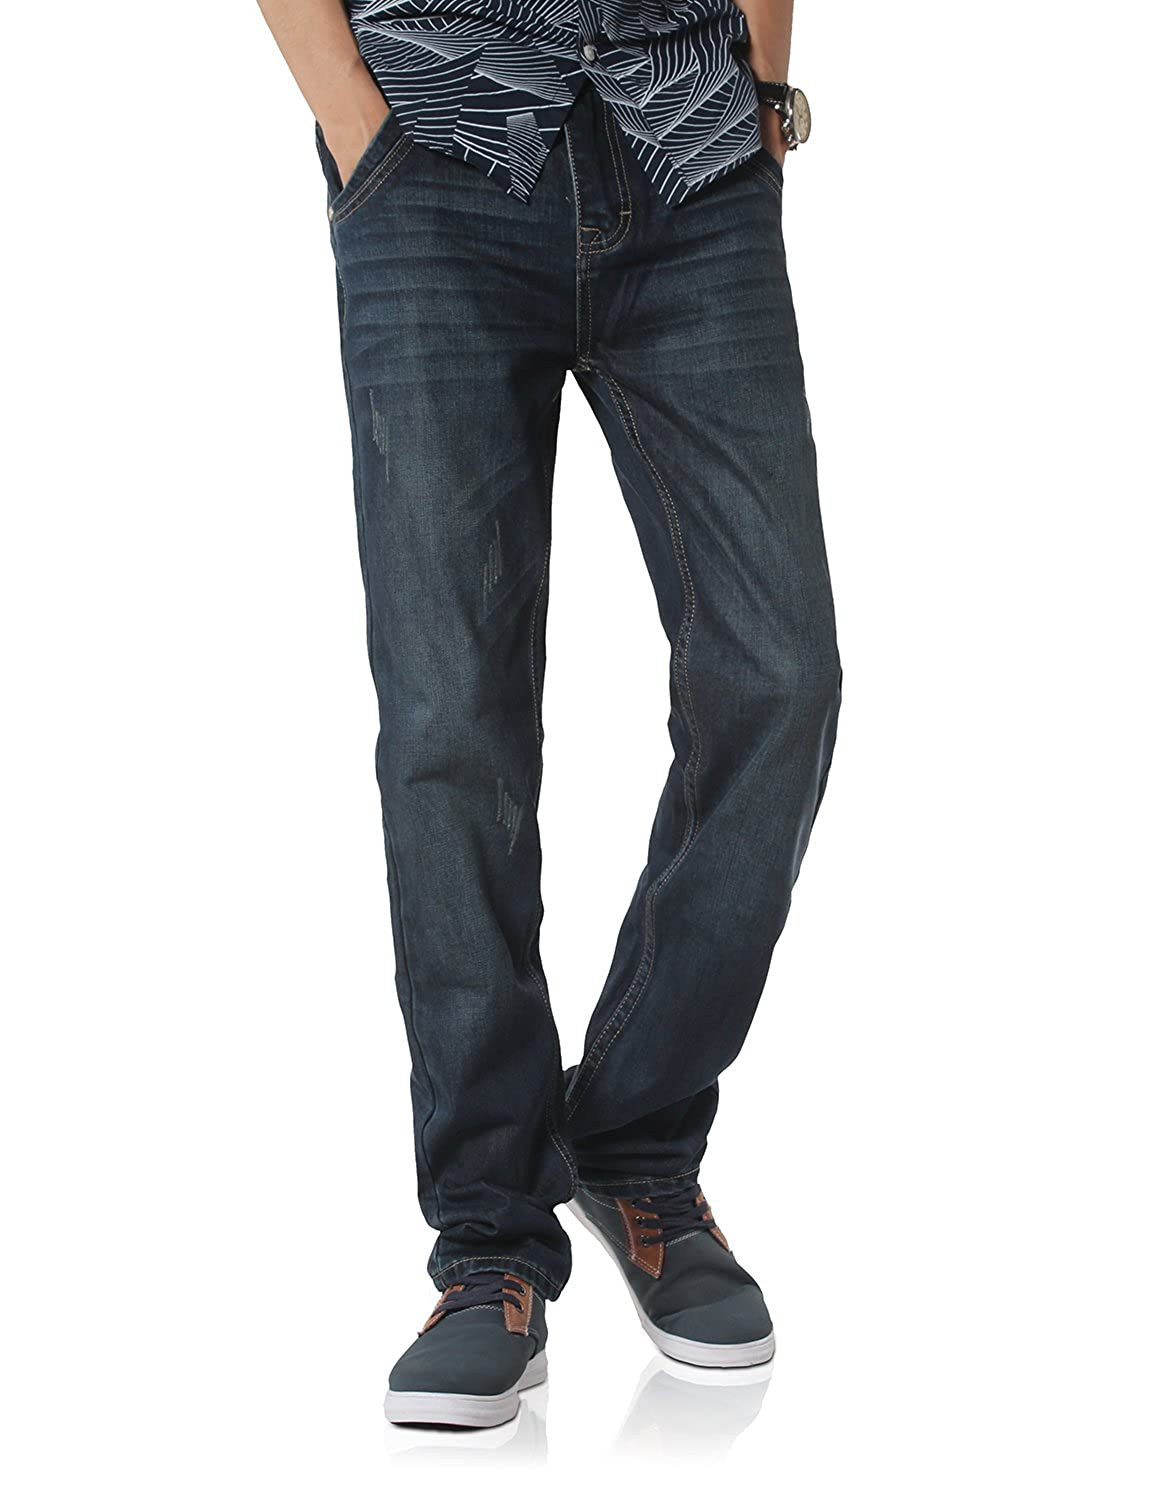 Demon&Hunter Men's Straight Leg Dark Blue Jeans S80L3-1